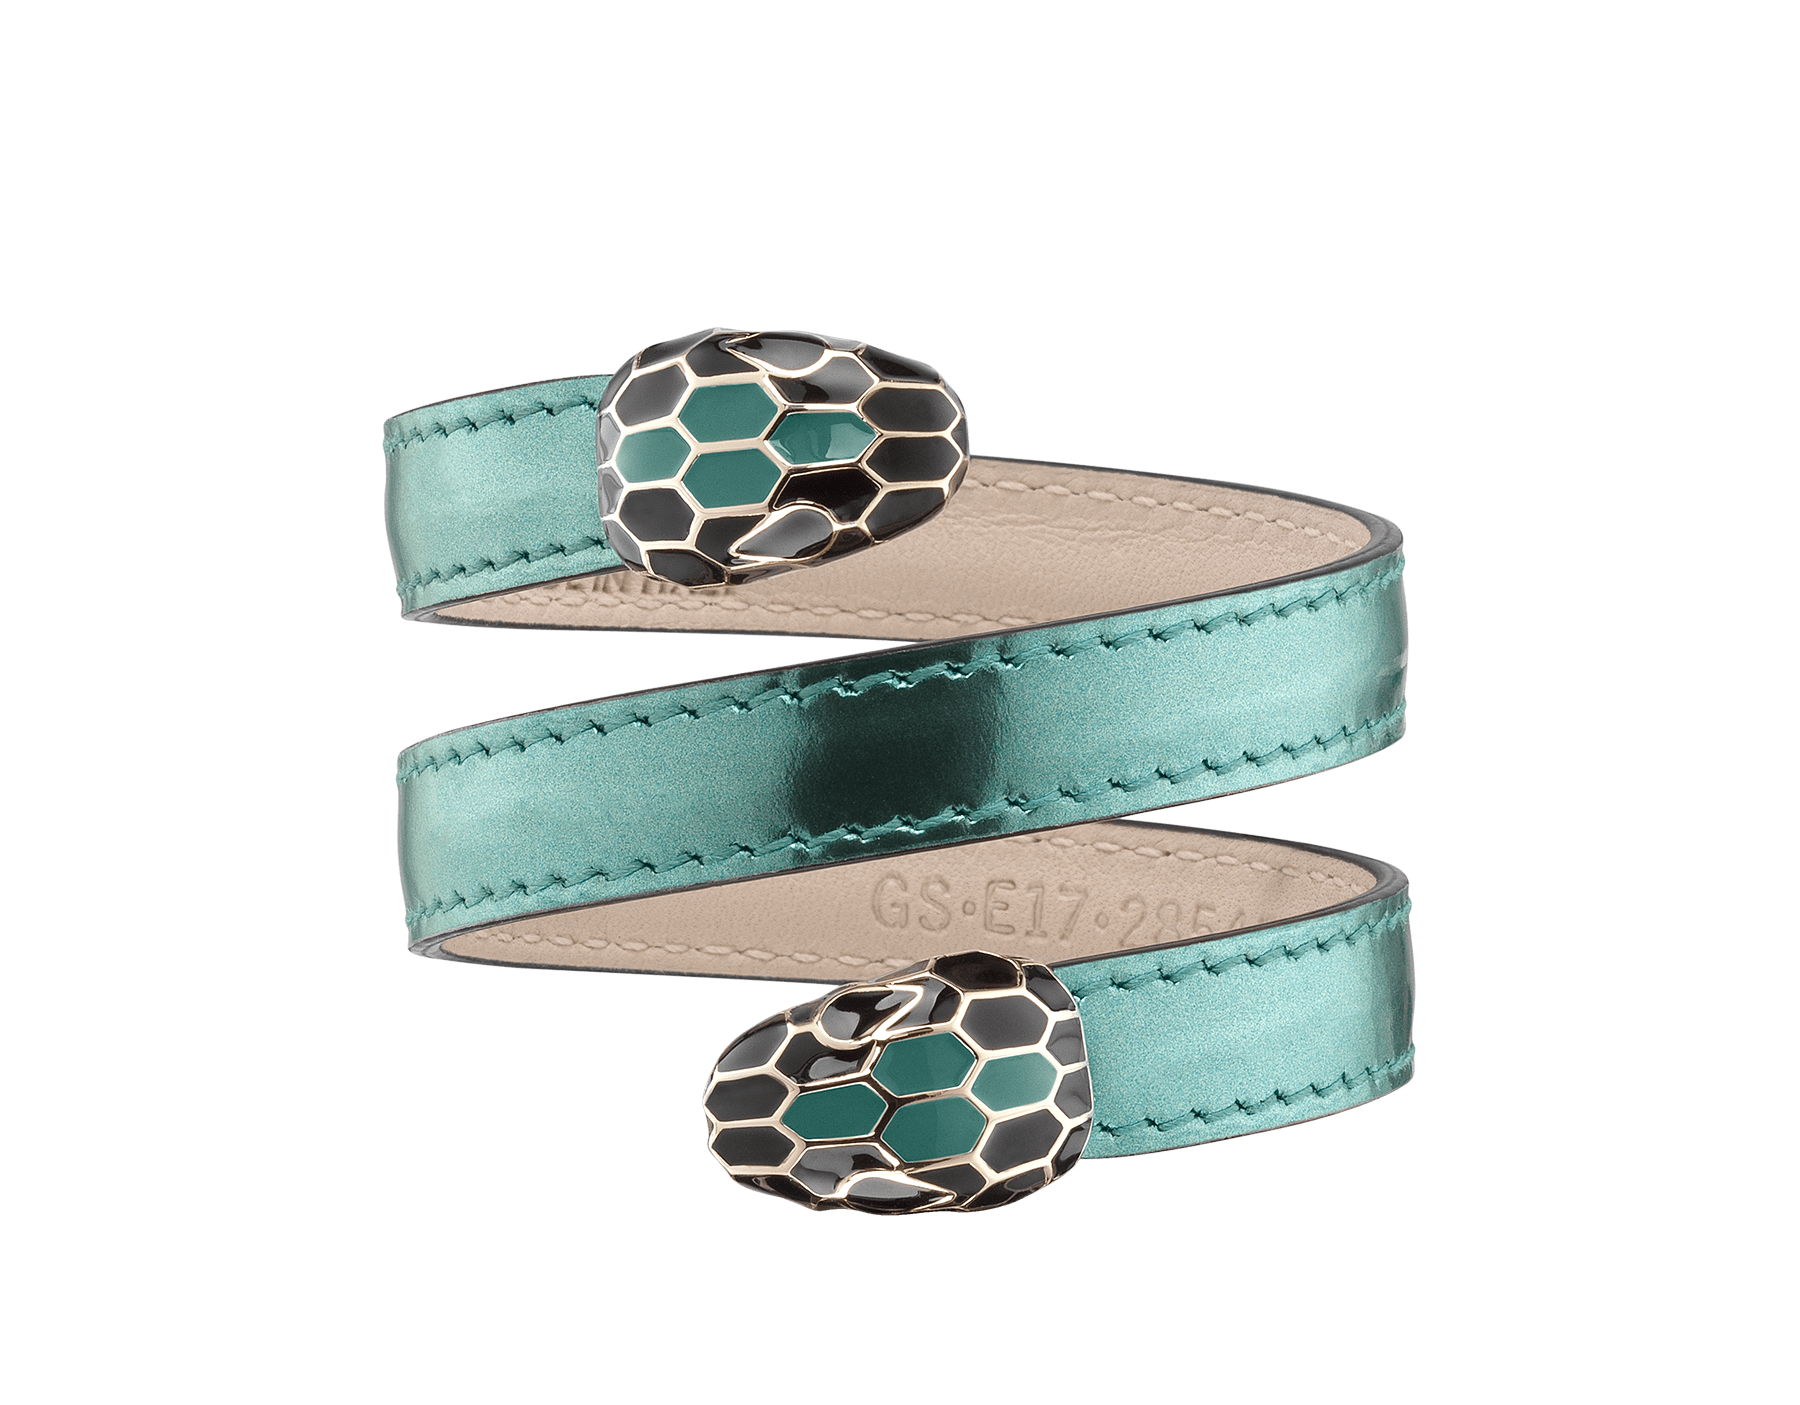 Serpenti Forever multi-coiled rigid Cleopatra bracelet in glacier turquoise brushed metallic calf leather, with brass light gold plated hardware. Iconic double snakehead décor in black and glacier turquoise enamel, with black enamel eyes. Cleopatra-BMCL-GT image 1